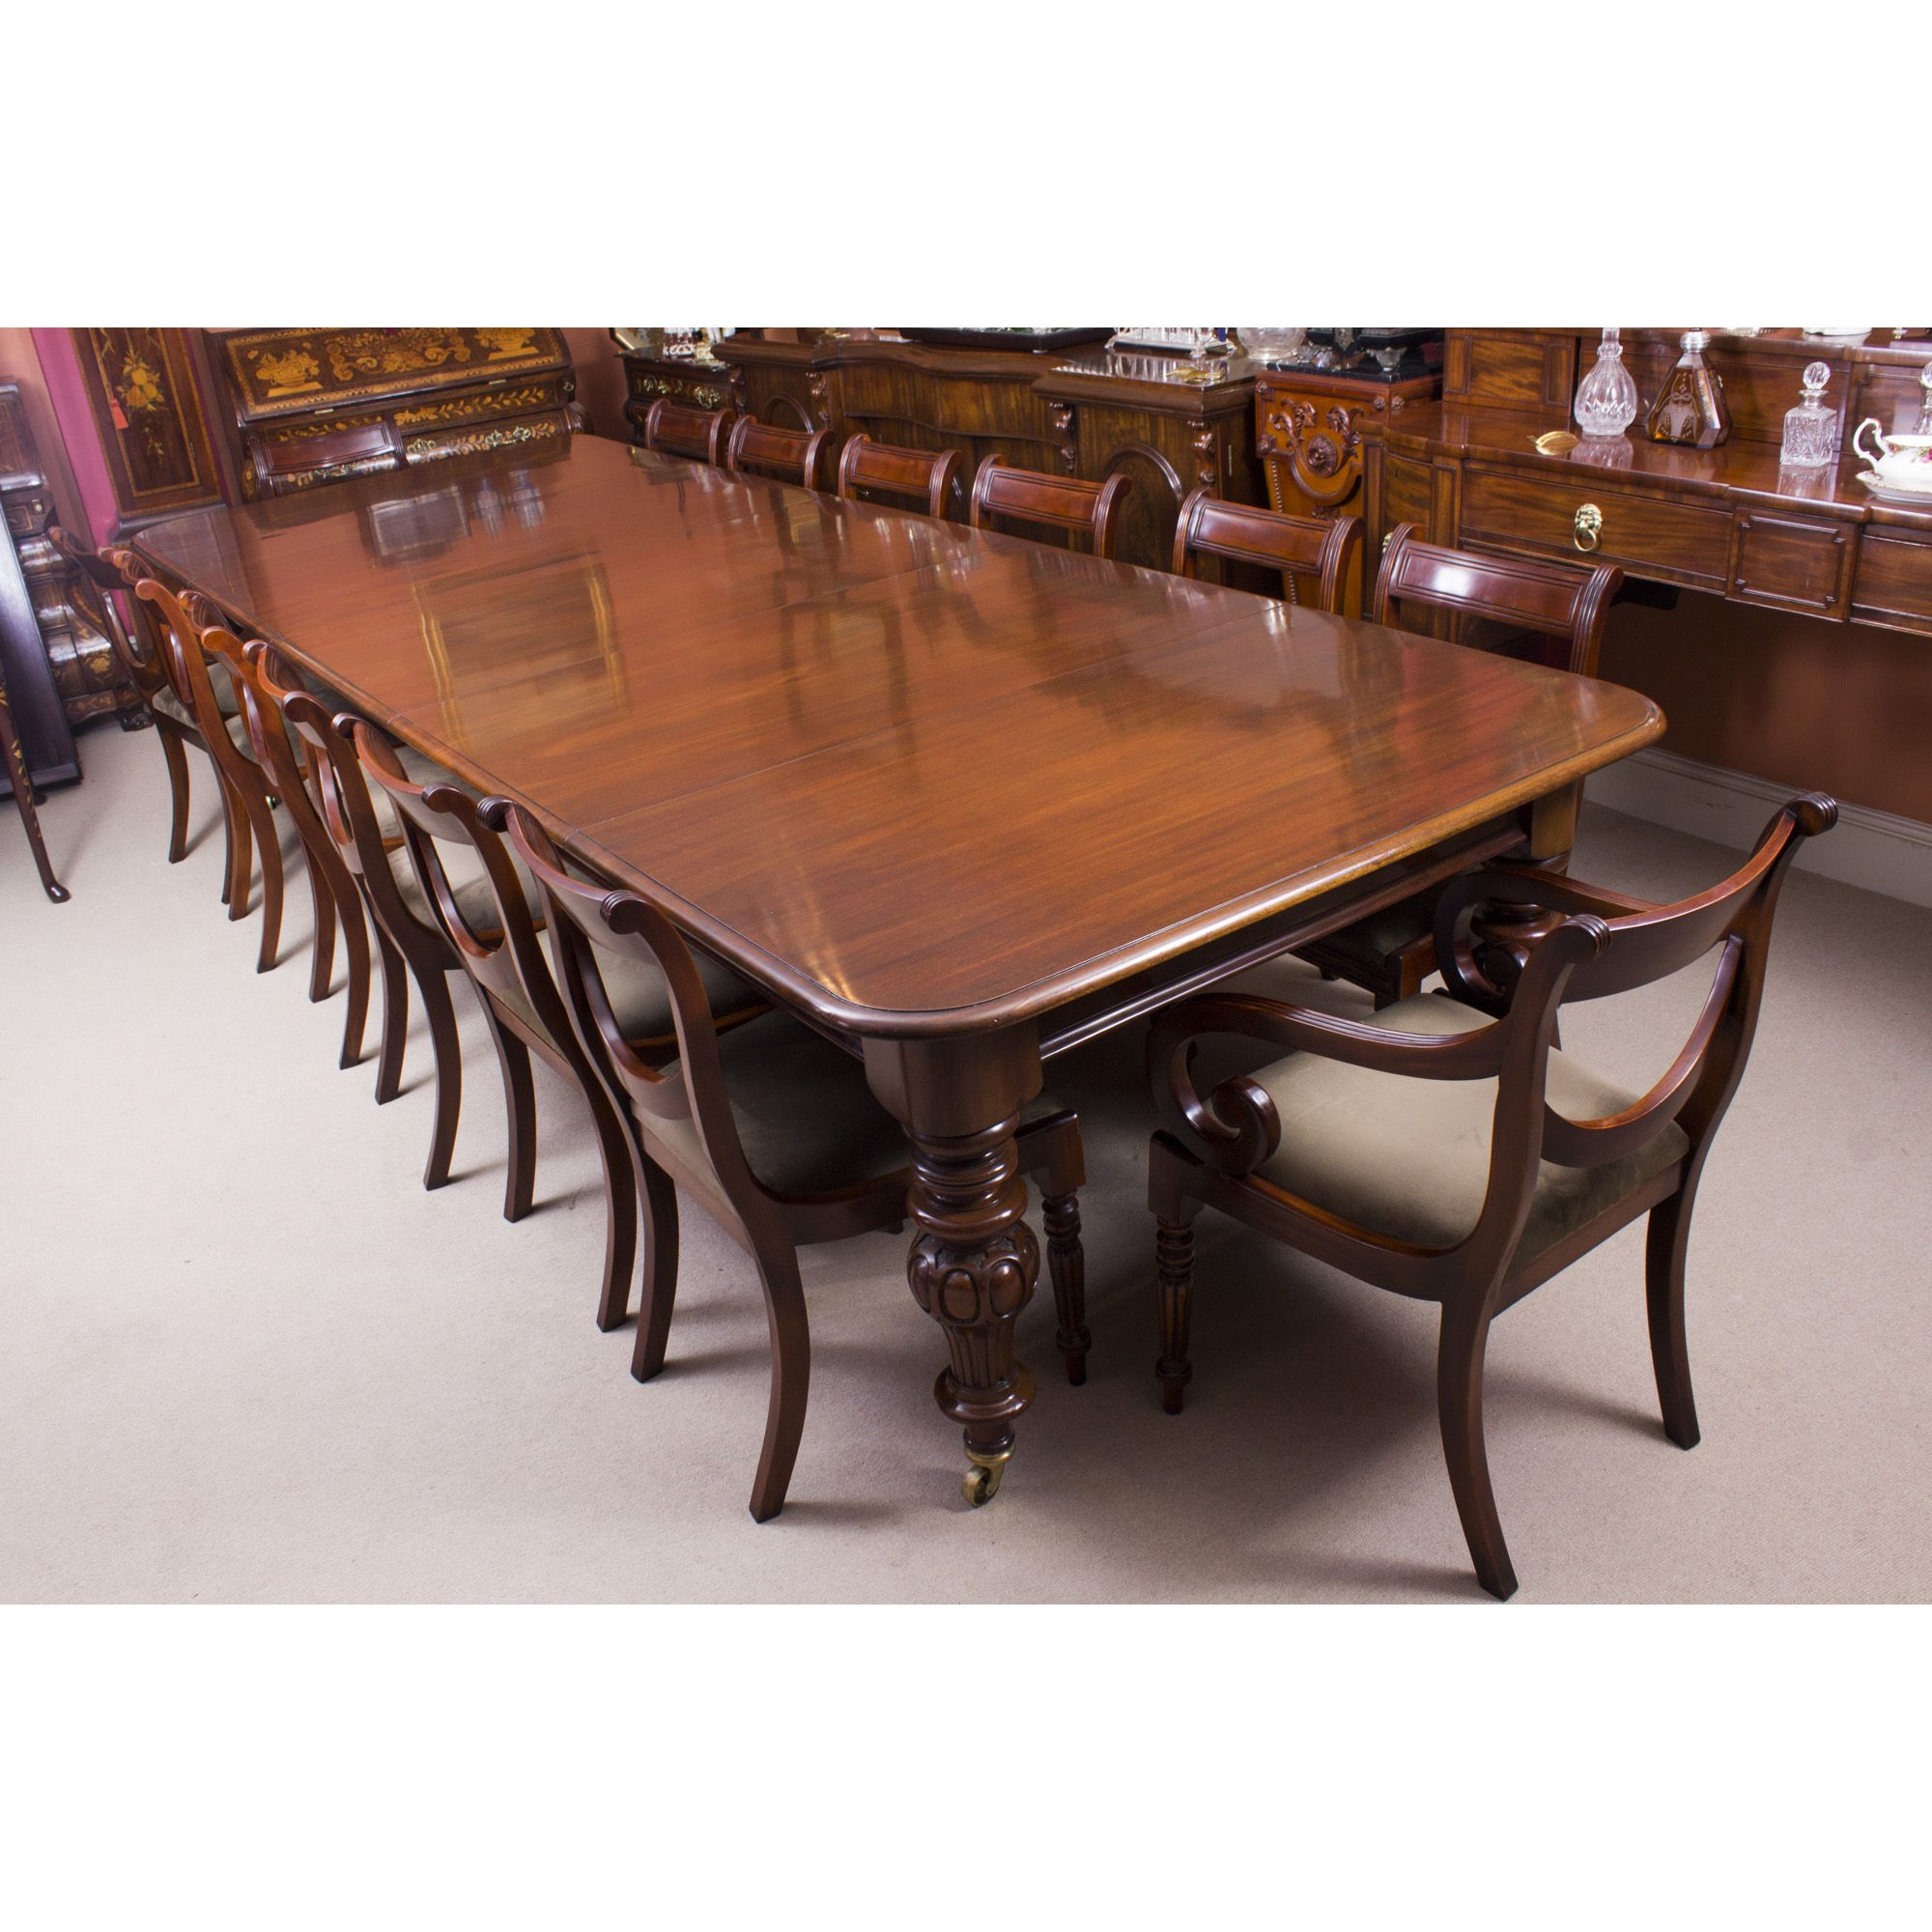 Antique Victorian 12 Ft Flame Mahogany Dining Table 14 Chairs C 1860 Dining Table Mahogany Dining Table Antique Dining Tables